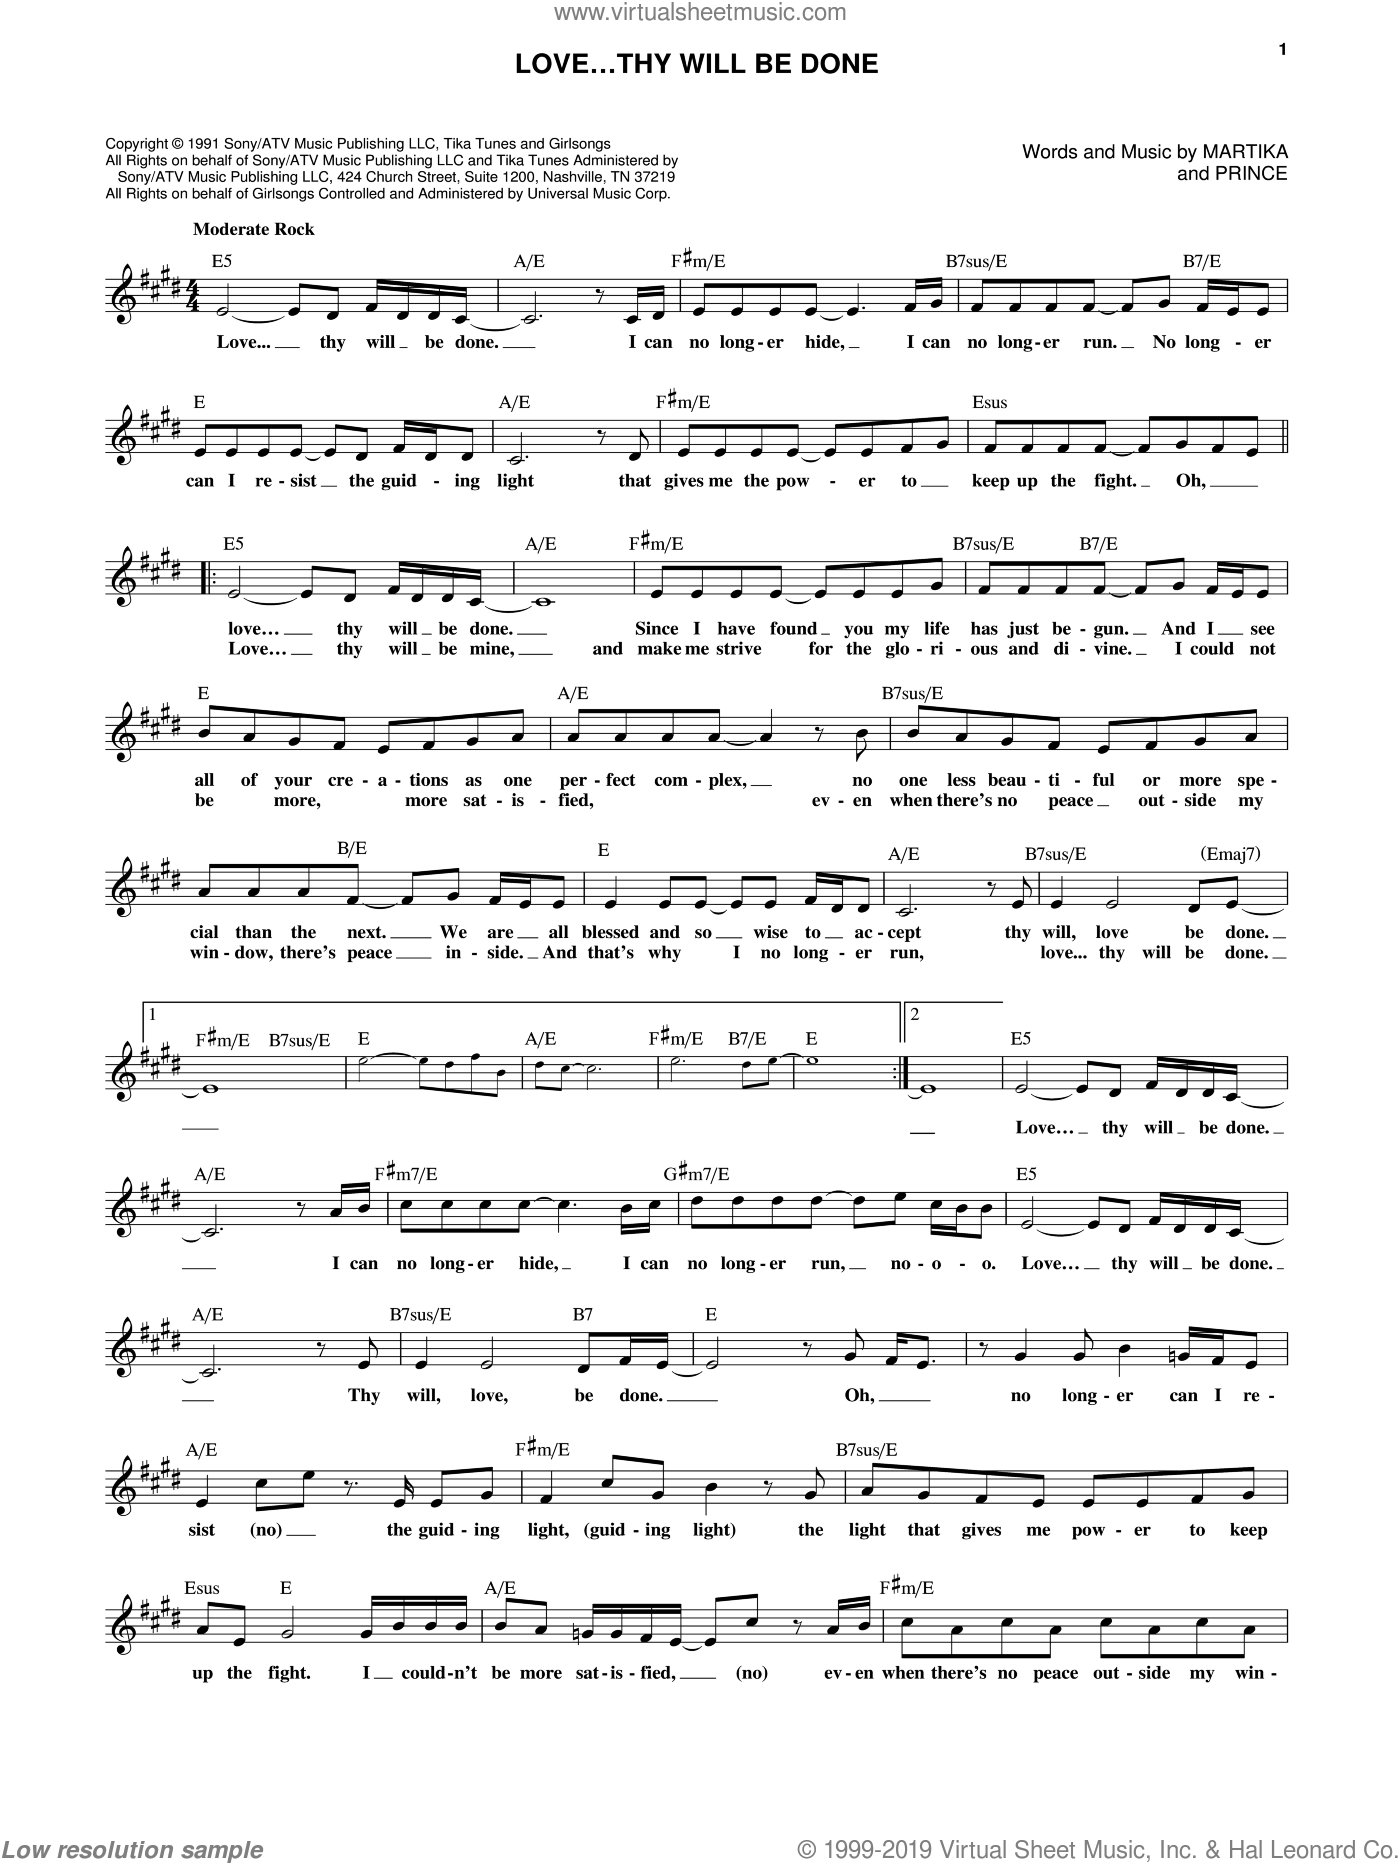 Love...Thy Will Be Done sheet music for voice and other instruments (fake book) by Prince and Martika, intermediate skill level